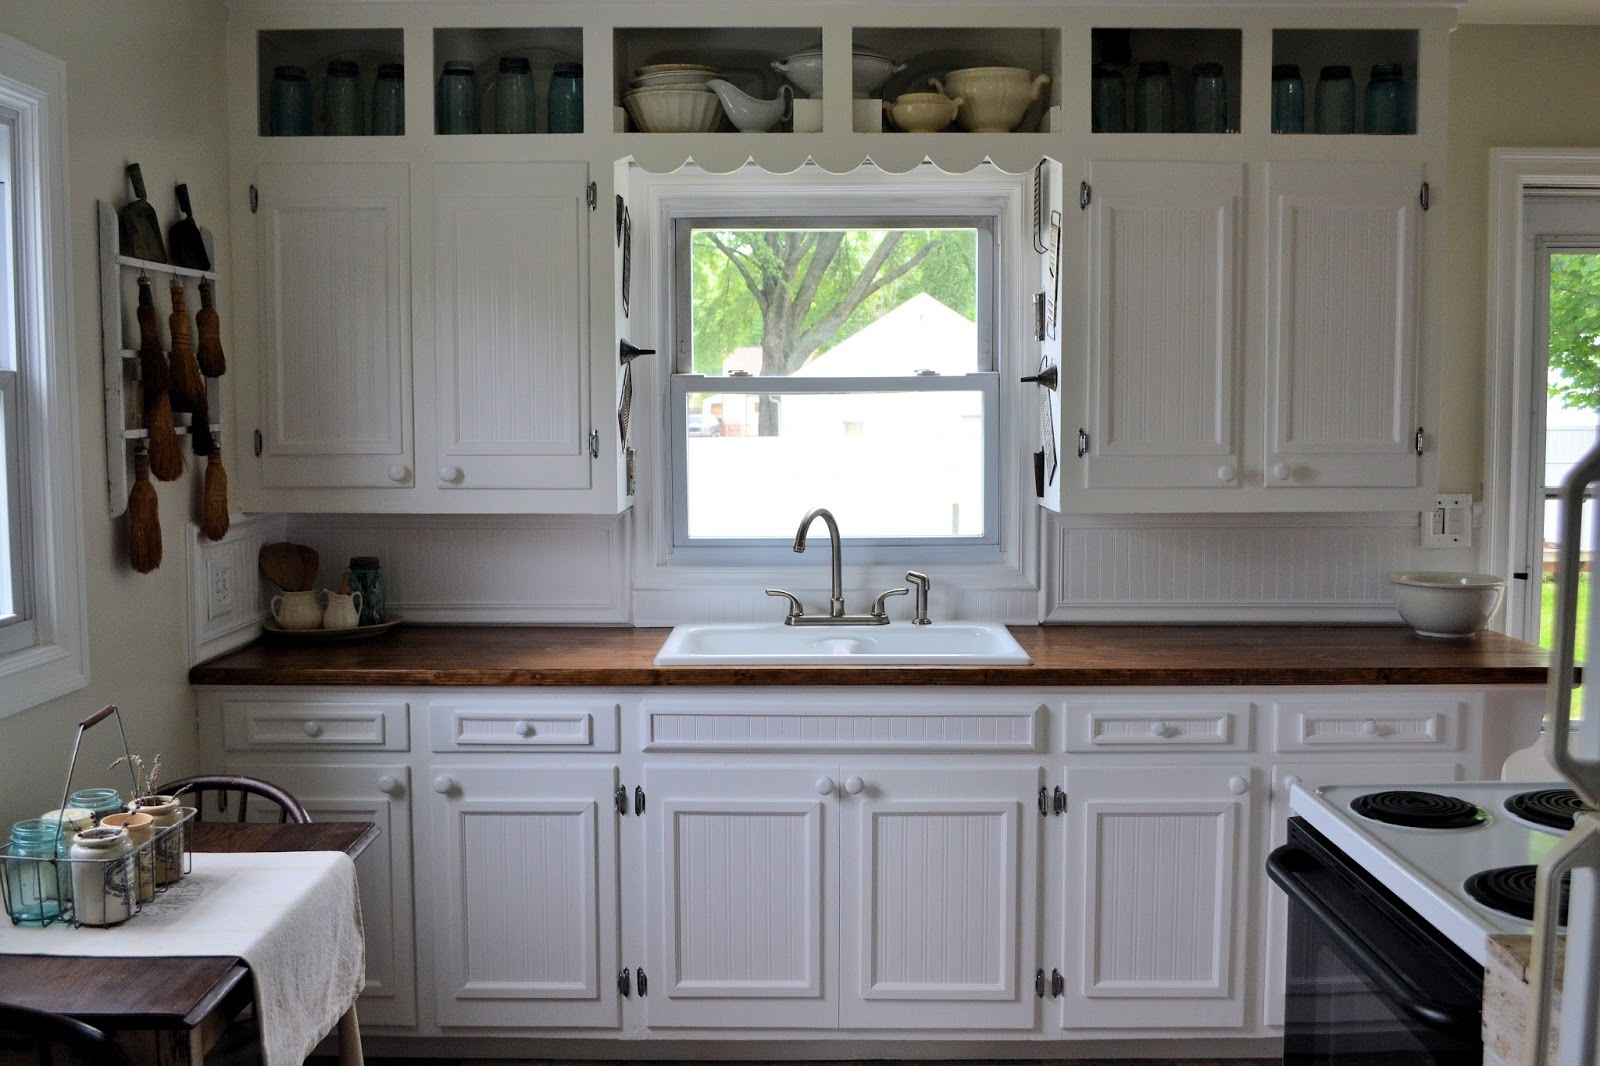 How to Dress Up Plain Kitchen Cabinets